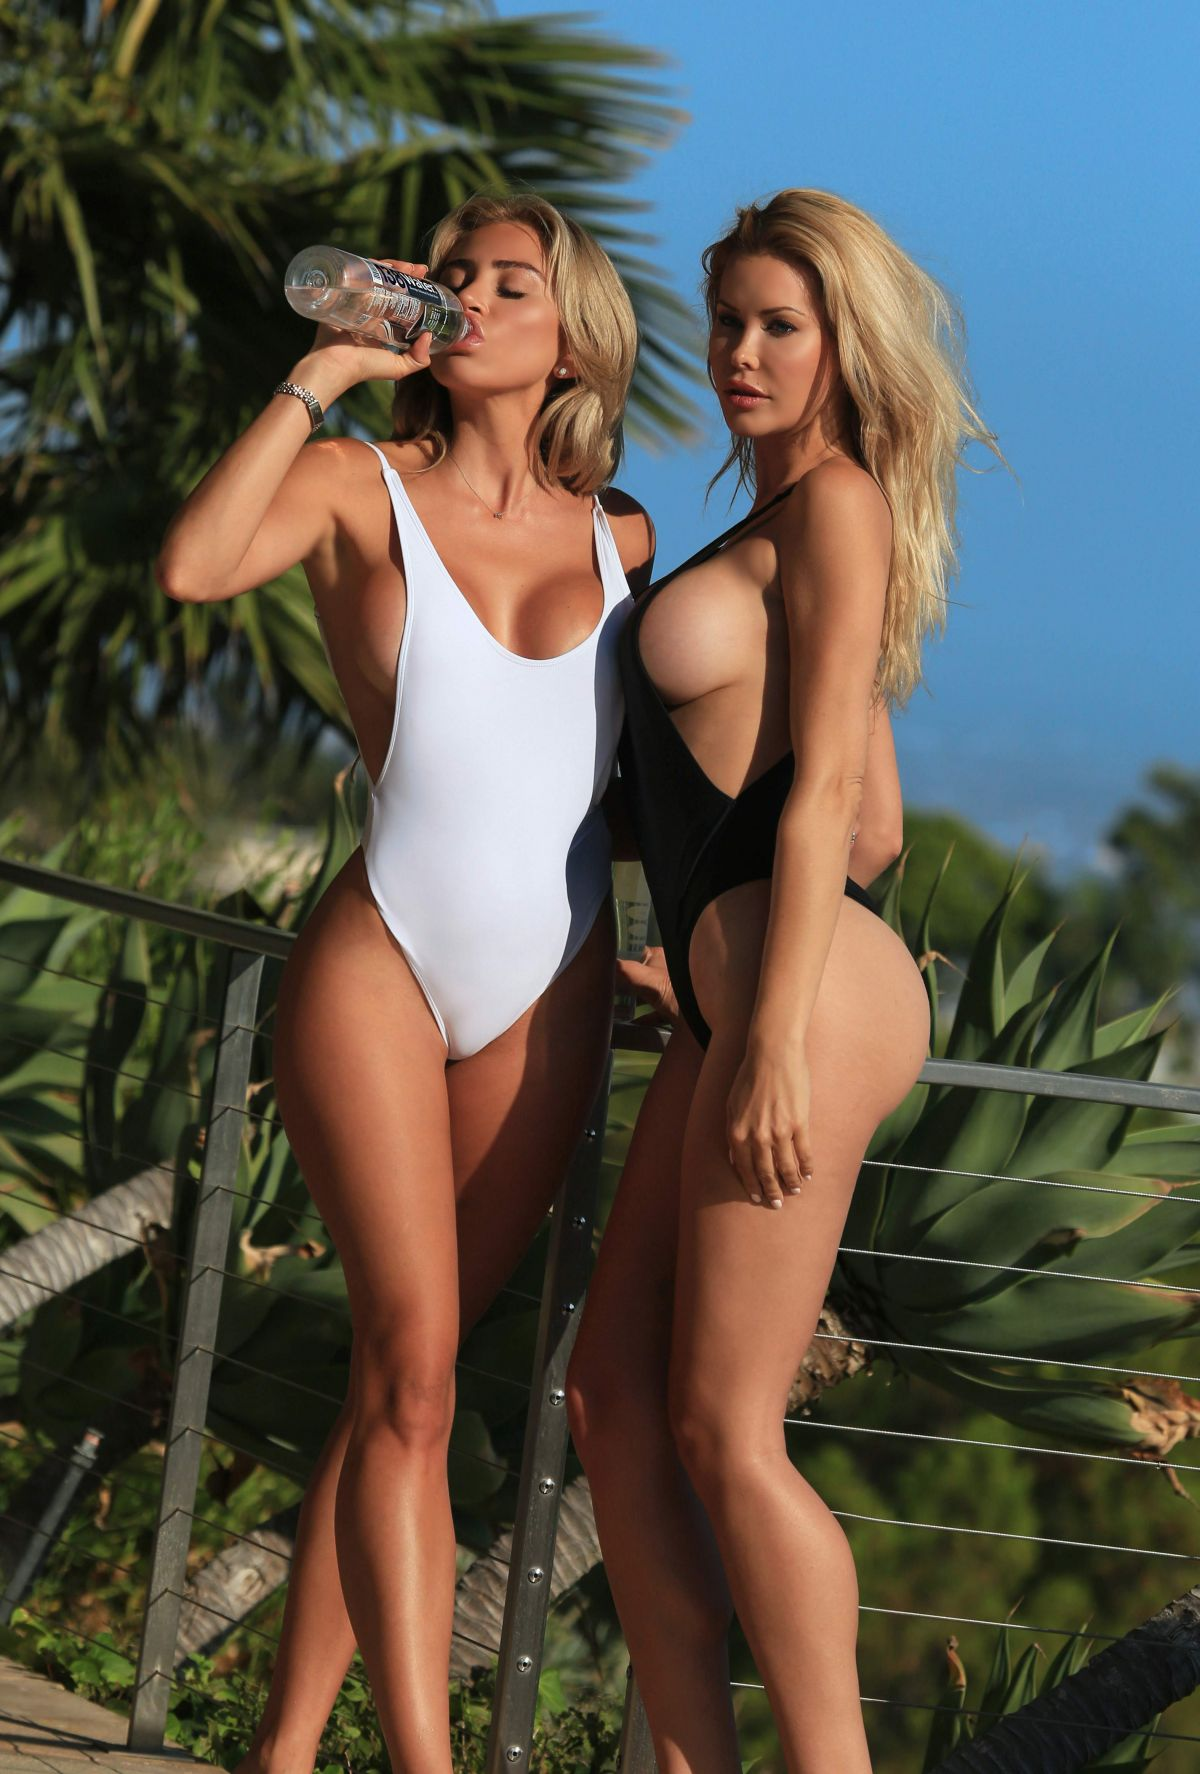 Khloe terae and kennedy summers for